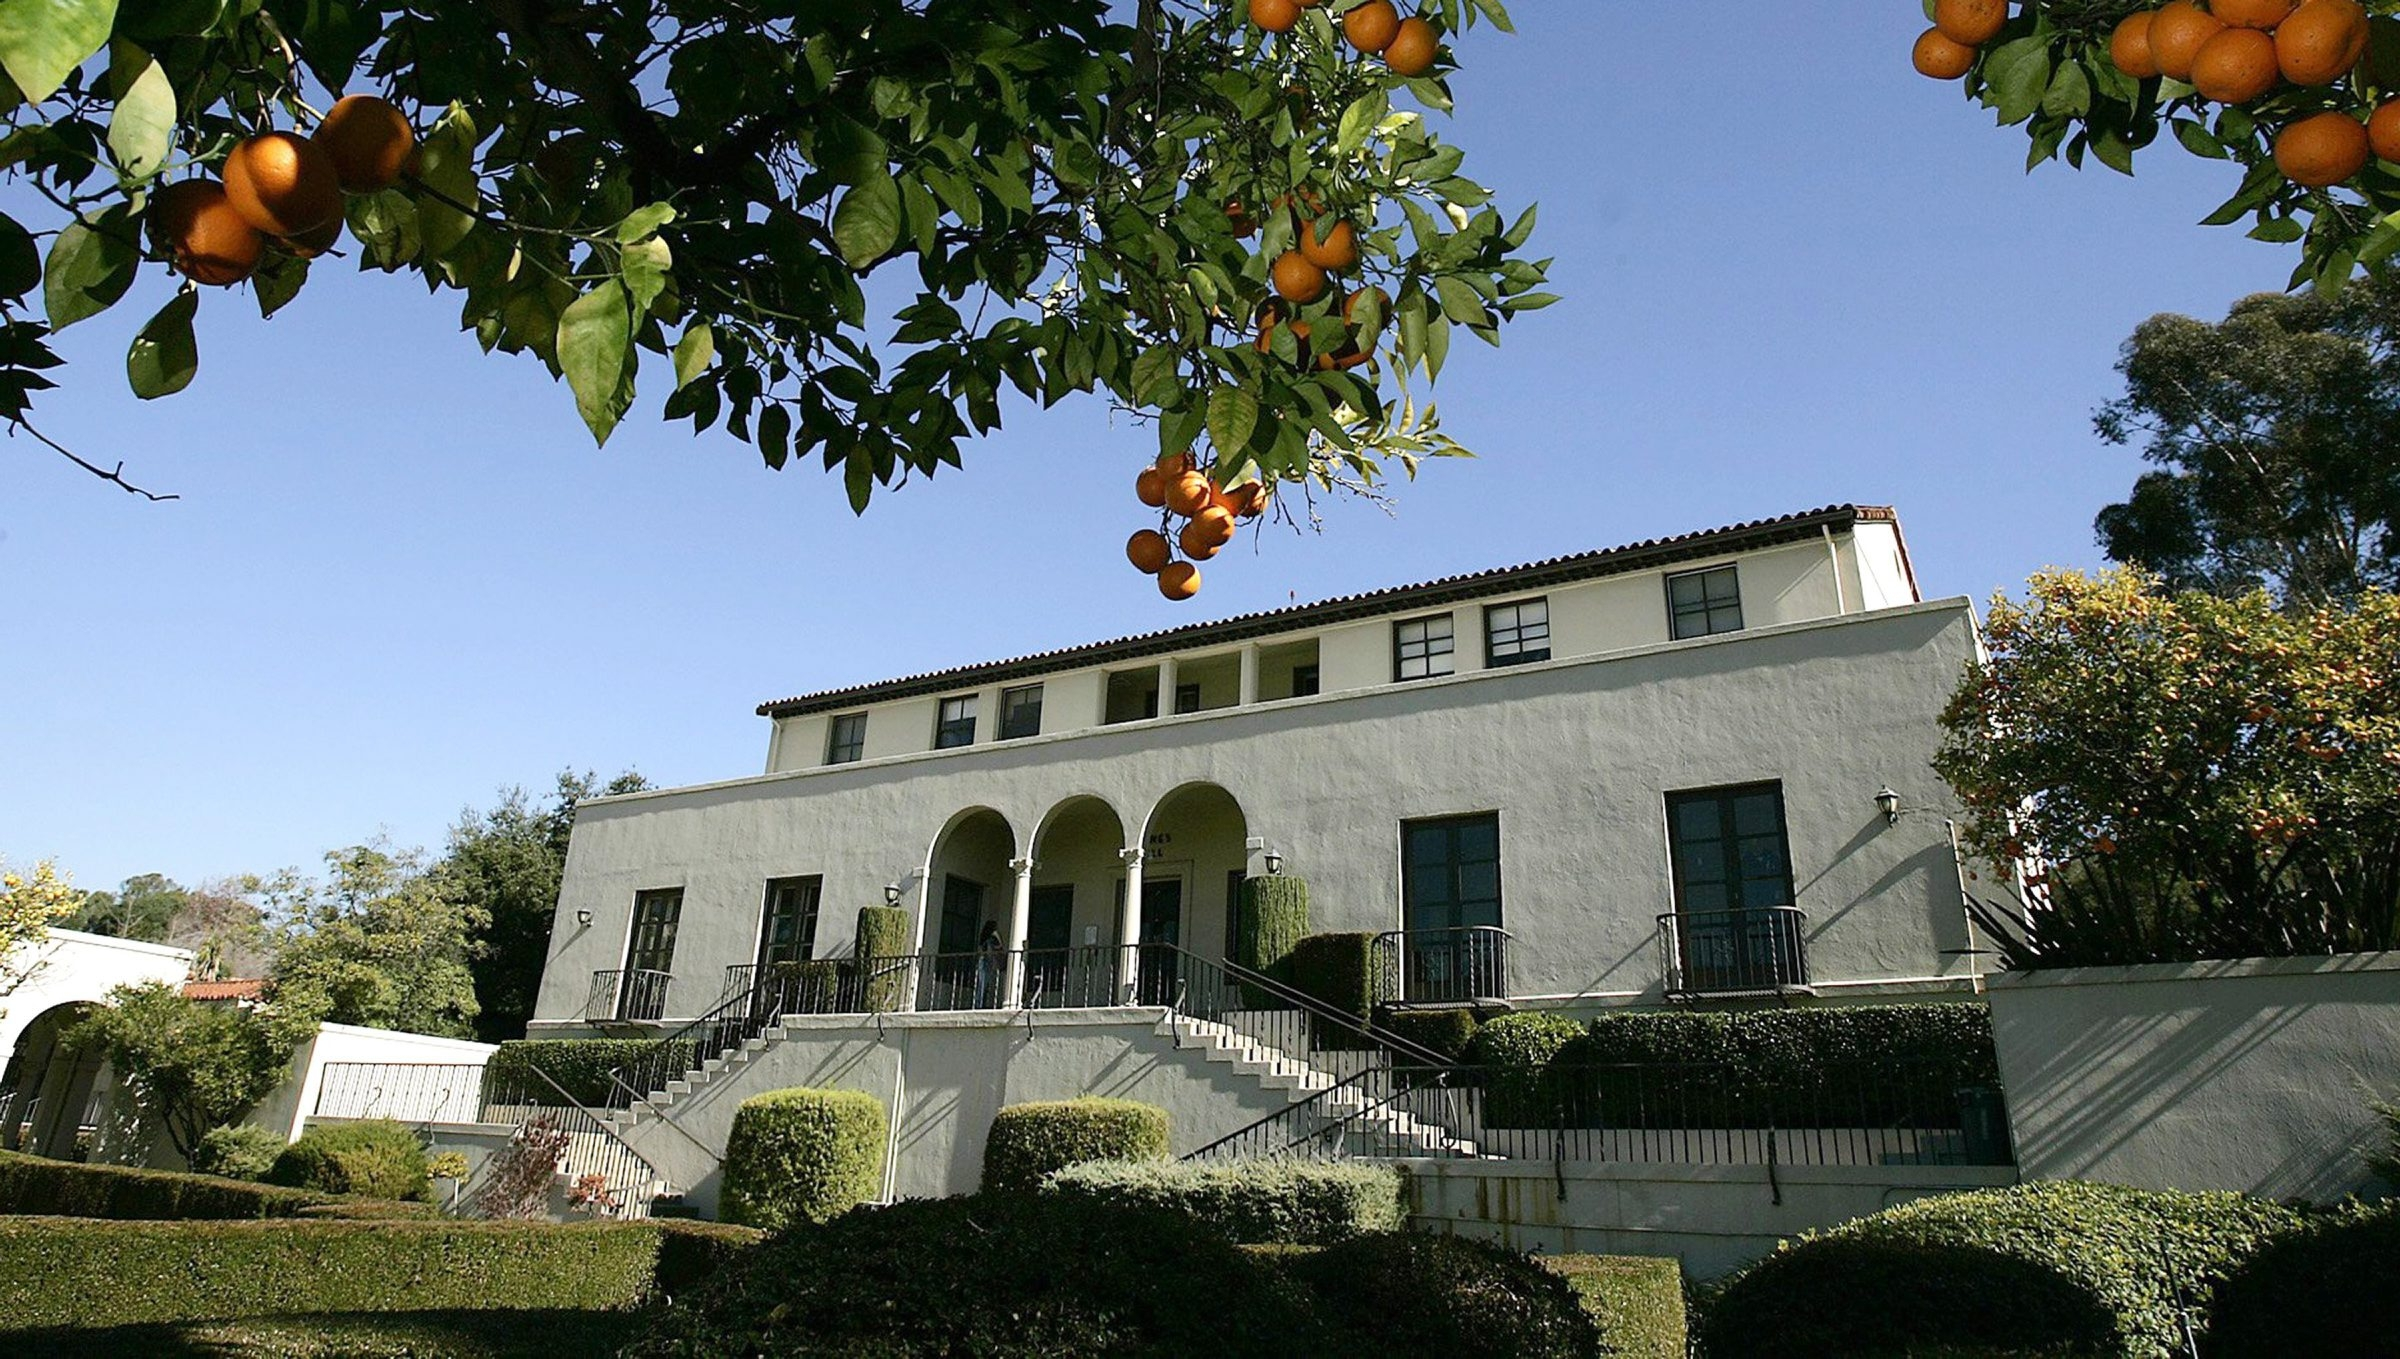 The Occidental College campus in Los Angeles is one of many being sued by students who were suspended or expelled after being found responsible for sexual assaults.